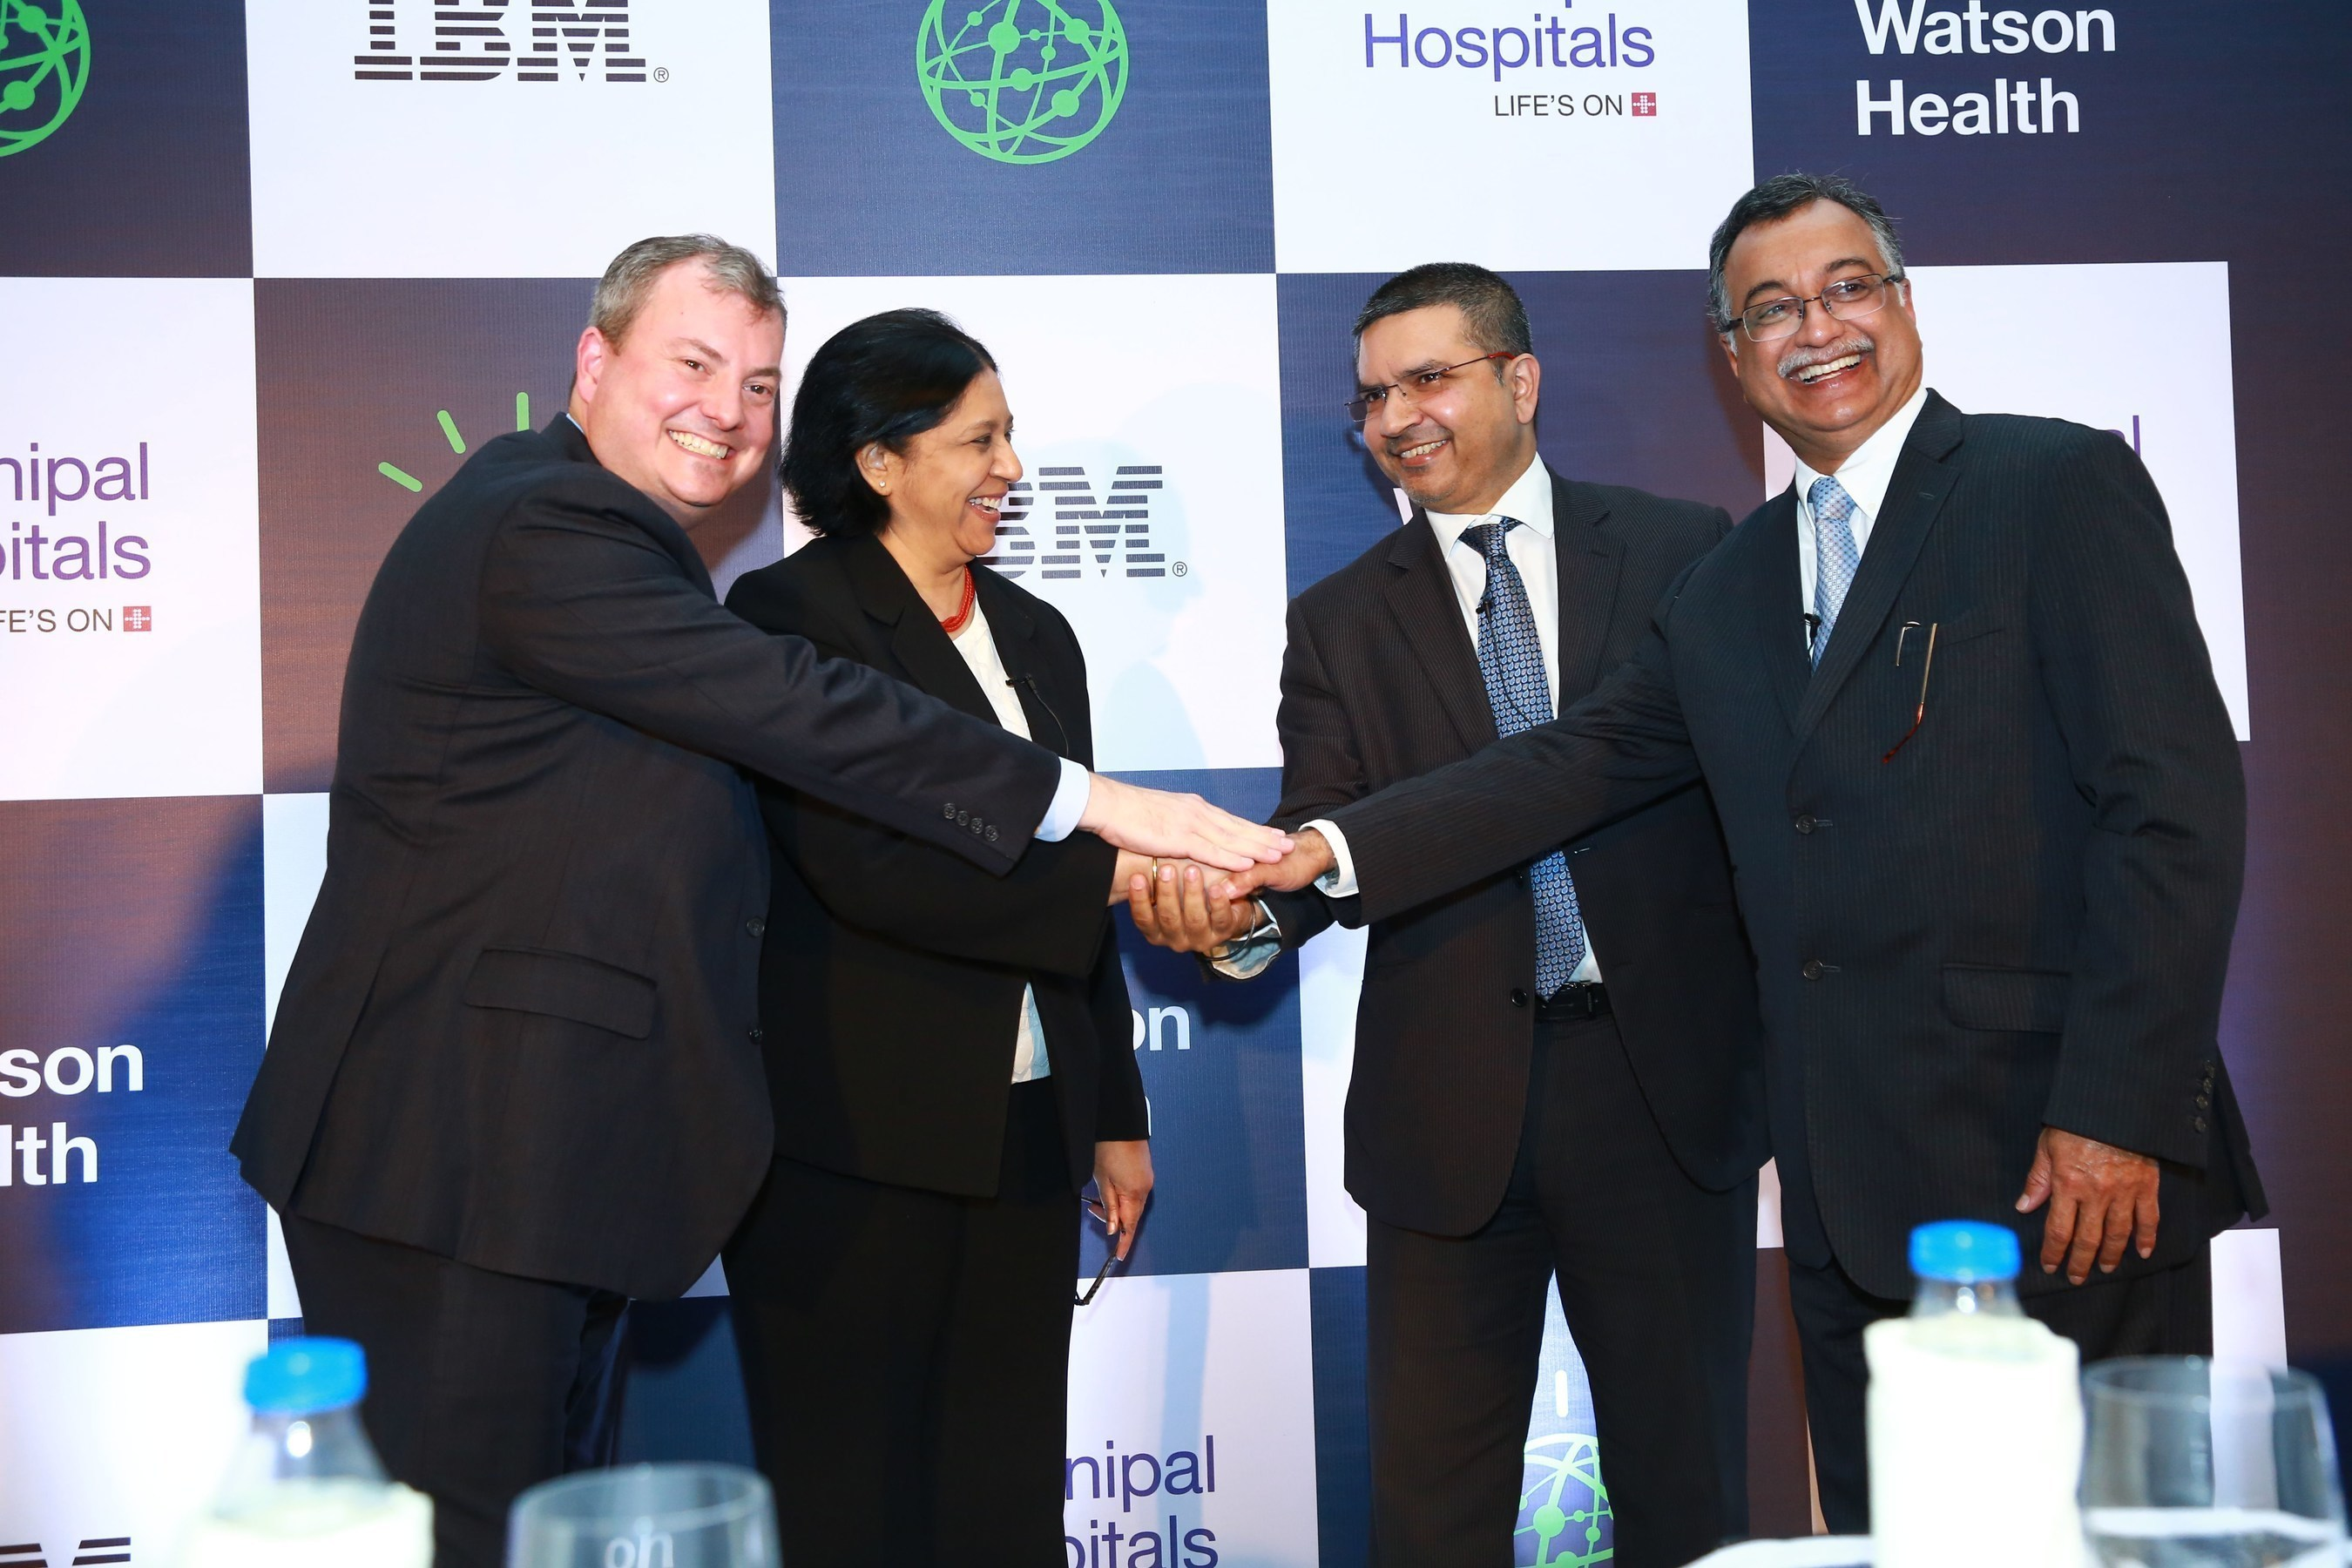 At a press event in Bangalore, IBM India Managing Director Vanitha Narayanan, IBM Watson Health Vice President Rob Merkel, Manipal Hospitals CEO & MD Dr. Ajay Bakshi, and Manipal Hospitals Chairman Dr. H Sudarshan Ballal announced that Manipal Hospitals will adopt Watson for Oncology in the first Watson engagement in India. The cognitive solution, which has been developed by IBM with experts at Memorial Sloan-Kettering Cancer Center, will help clinicians analyze massive amounts of data to identify individualized, evidence-based treatment options for the 200,000 cancer patients who receive care at Manipal facilities each year.  (Courtesy: IBM)